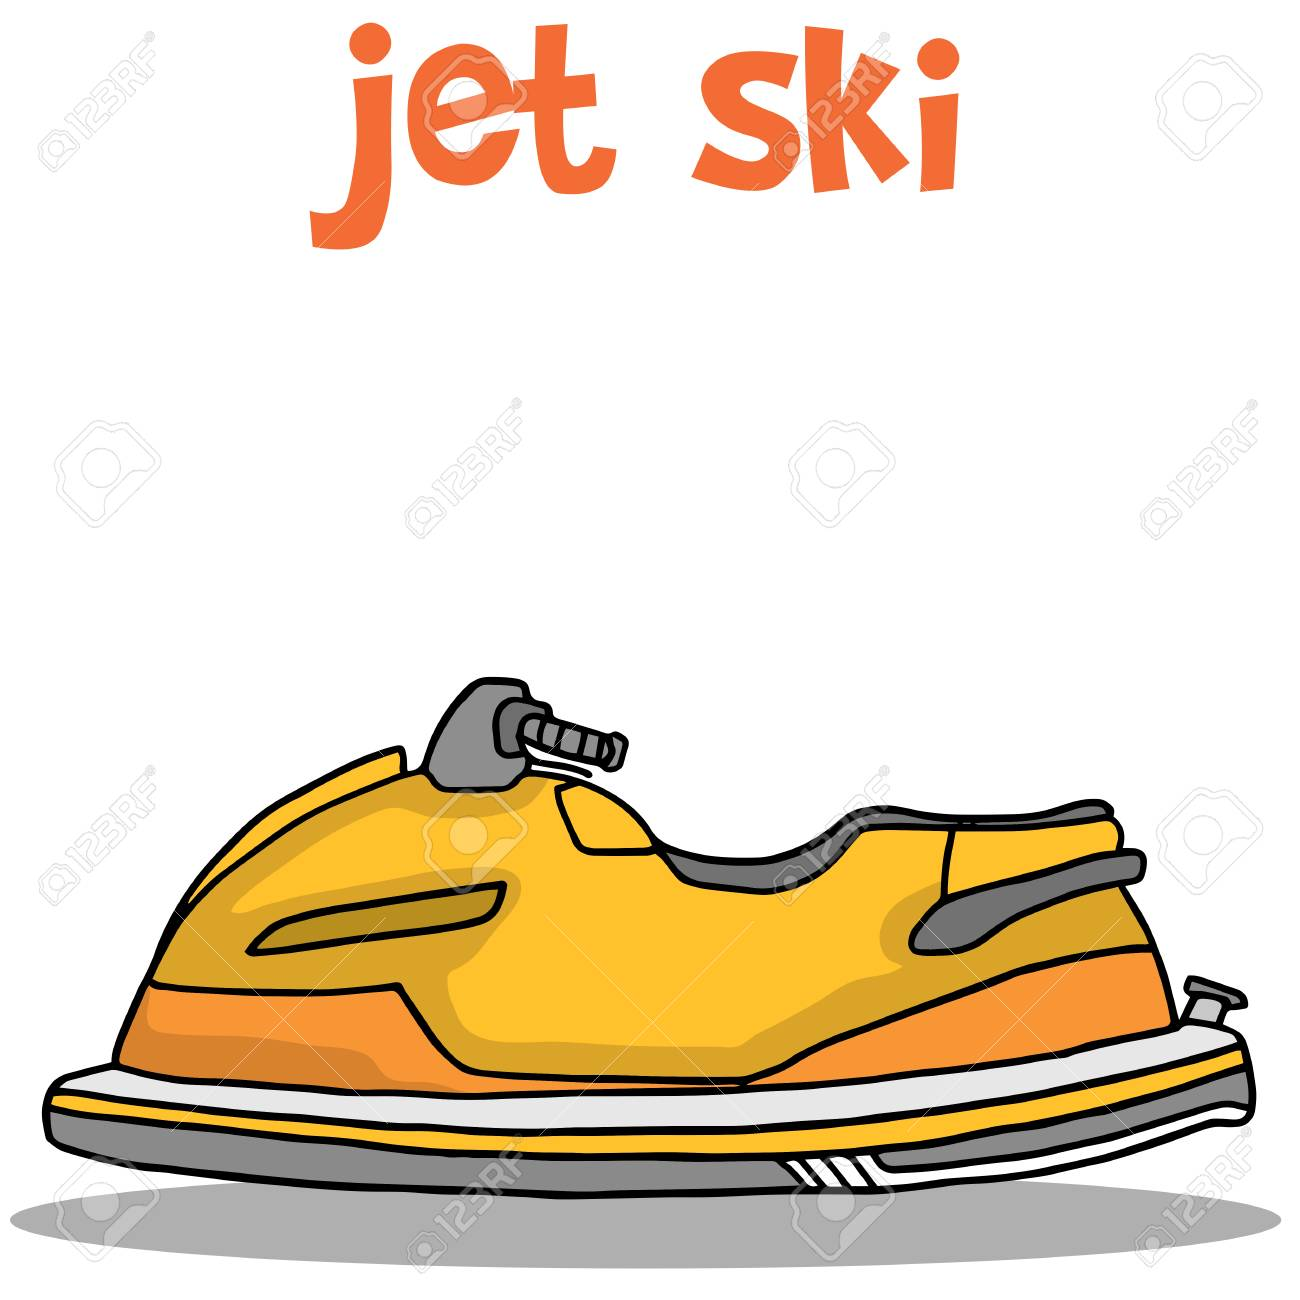 Illustration Of Jet Ski Cartoon Collection Stock Royalty Free Cliparts Vectors And Stock Illustration Image 71094393